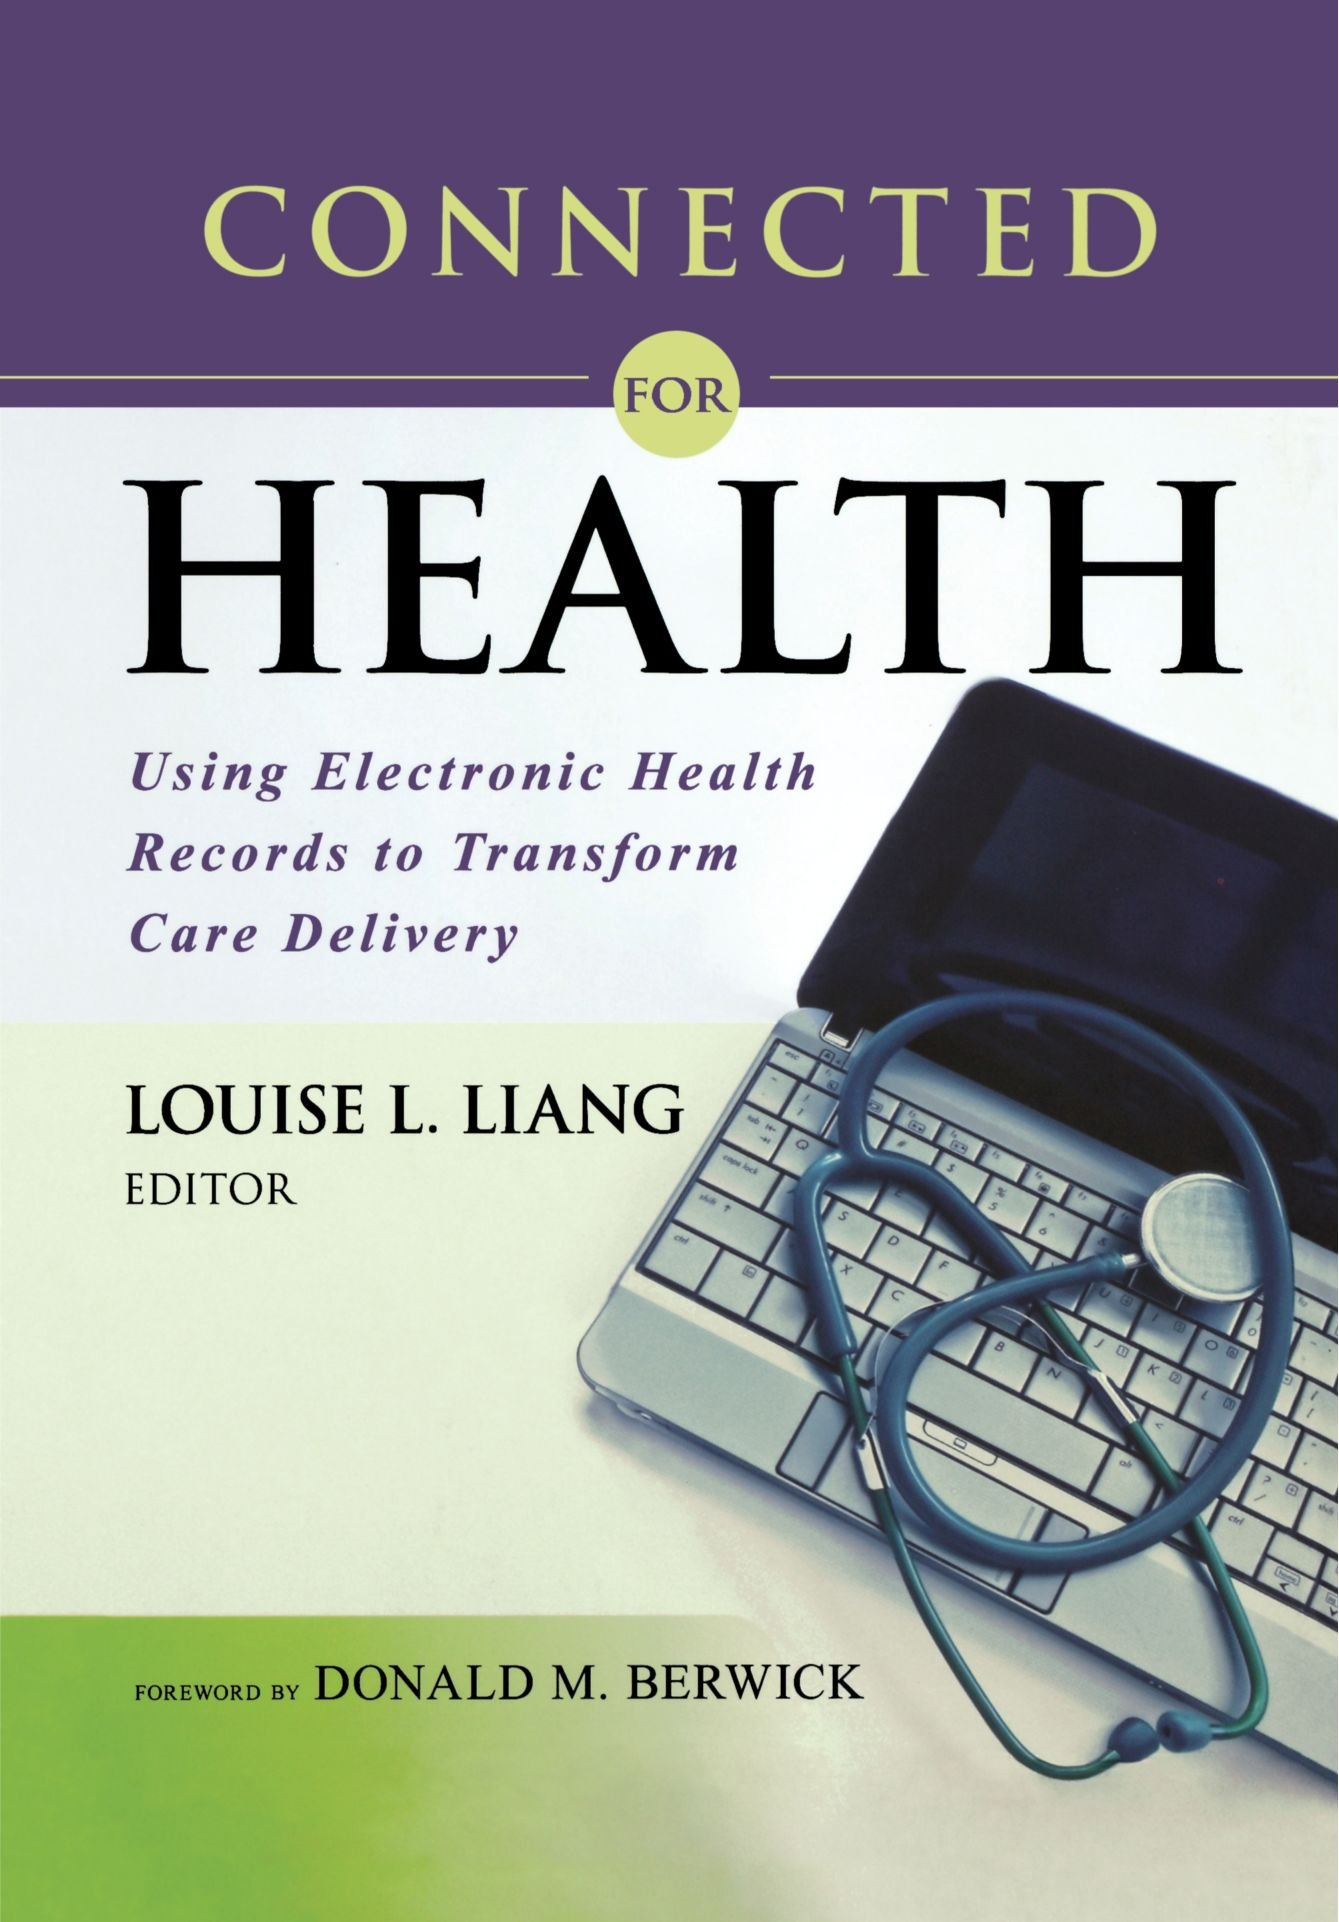 Connected for Health: Using Electronic Health Records to Transform Care Delivery